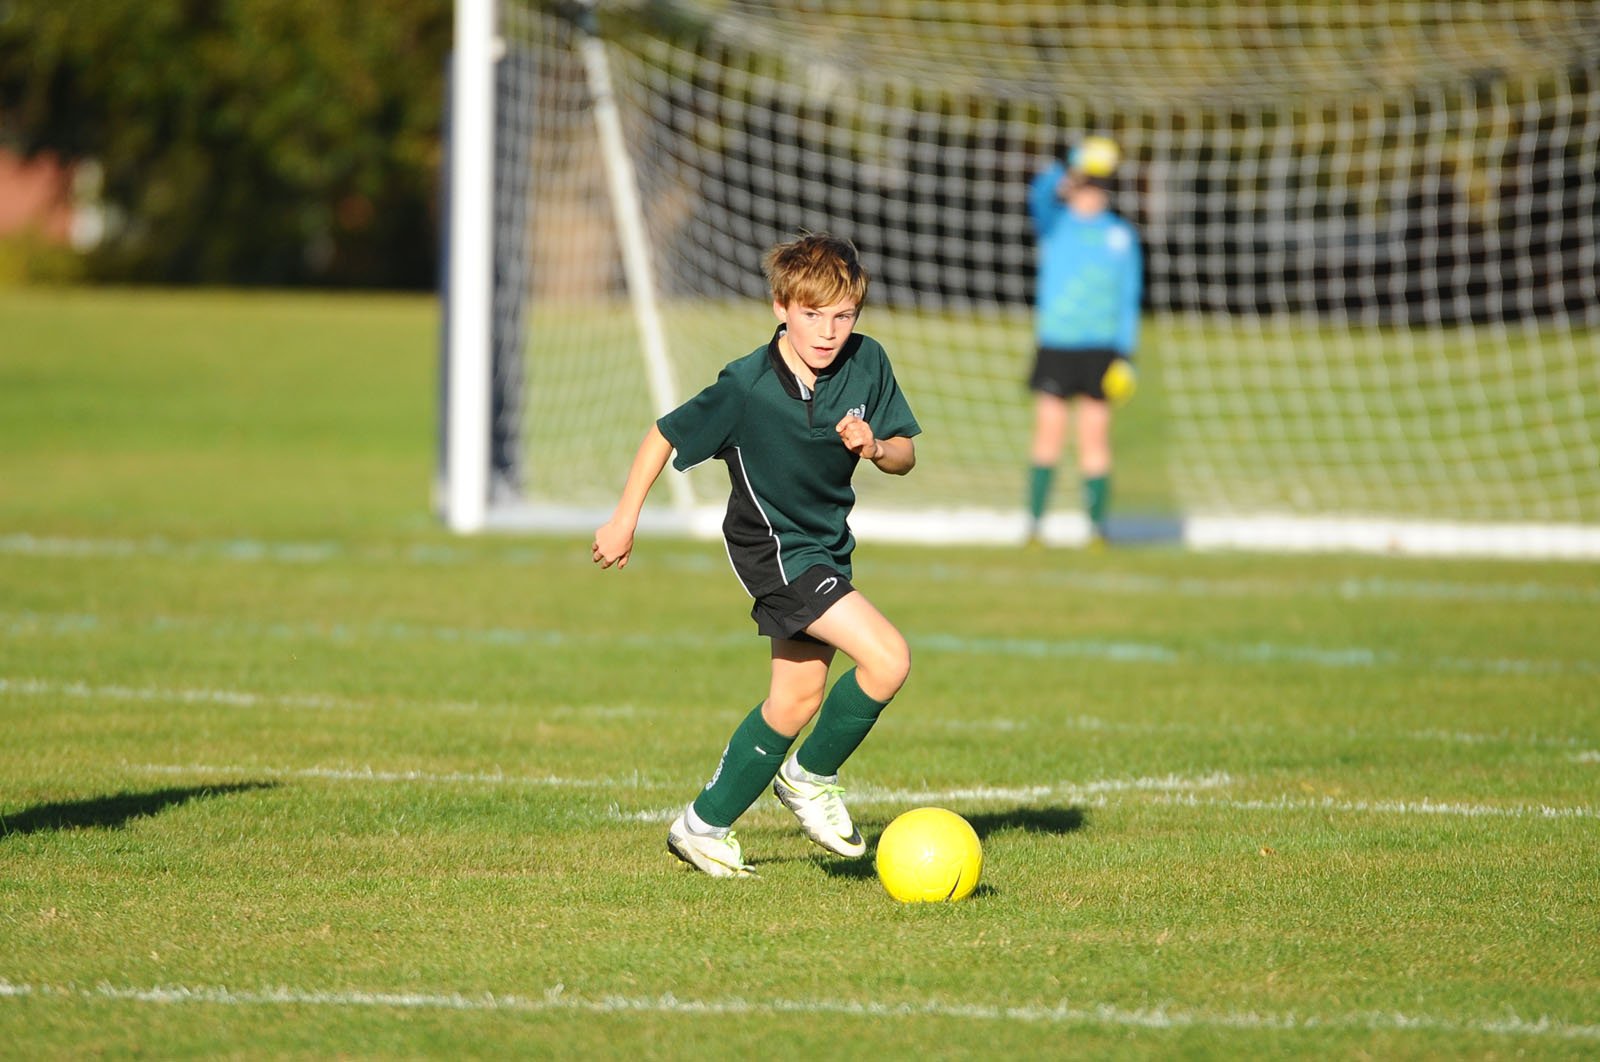 What Goalkeepers Ought to Do Before Facing an Attempt?